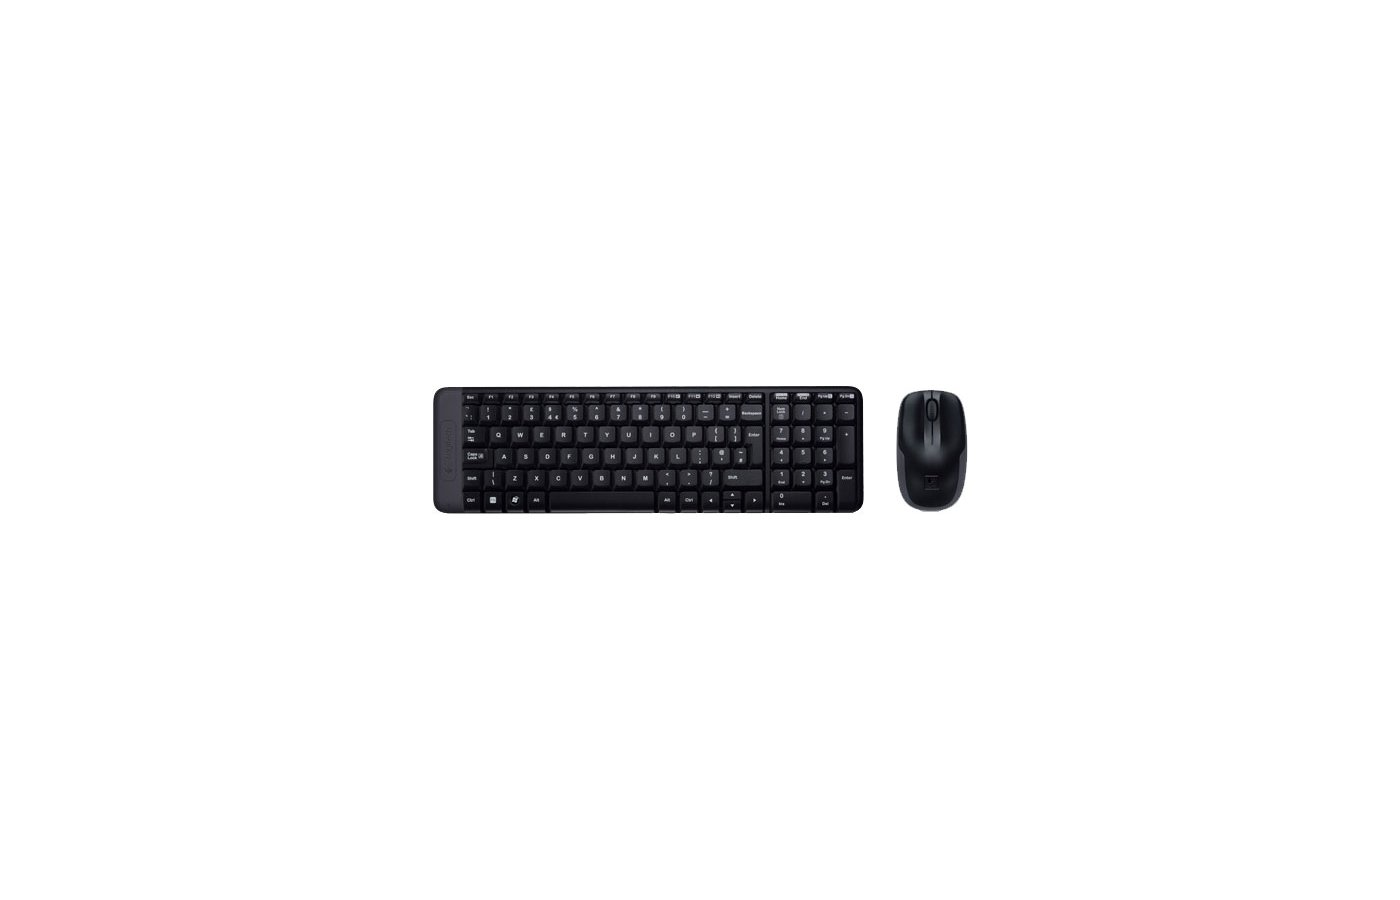 Клавиатура + мышь Logitech MK220 Desktop Wireless